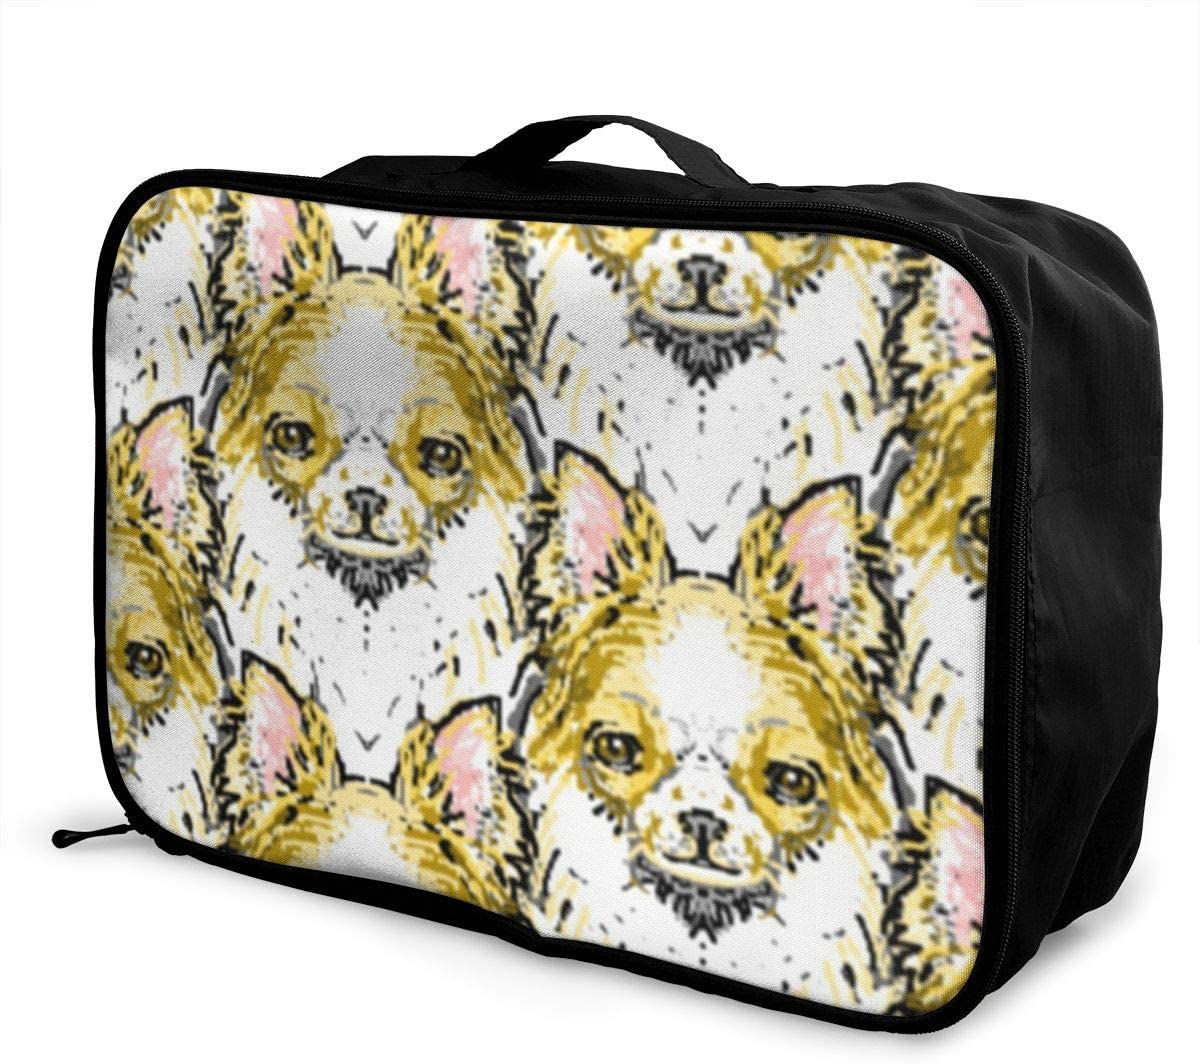 Long Haired Chihuahua Travel Carry-on Luggage Weekender Bag Overnight Tote Flight Duffel In Trolley Handle